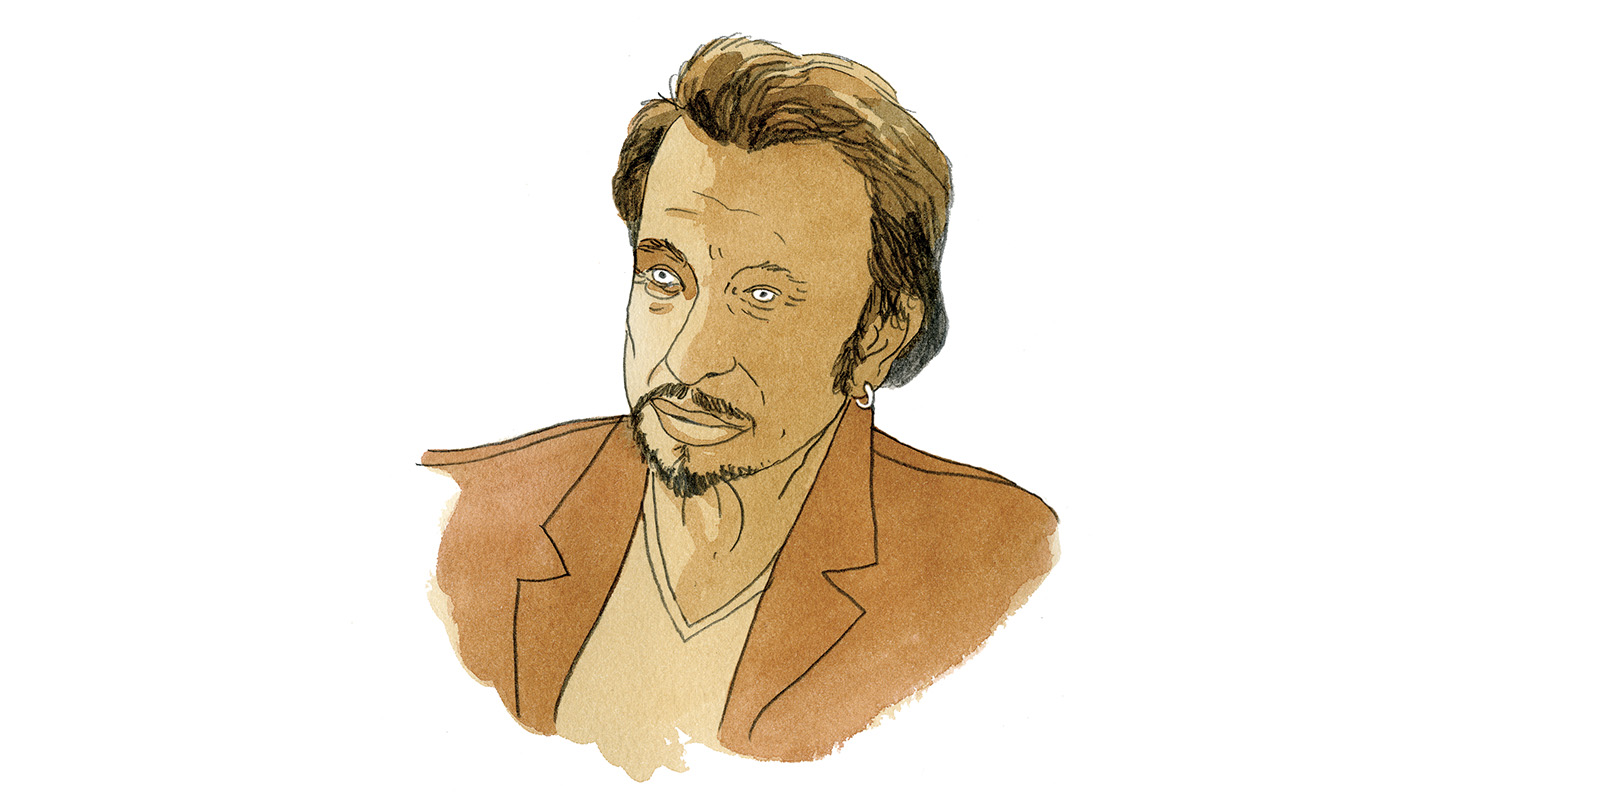 Portrait de Johnny Hallyday à l'aquarelle, illustration de l'article Johnny